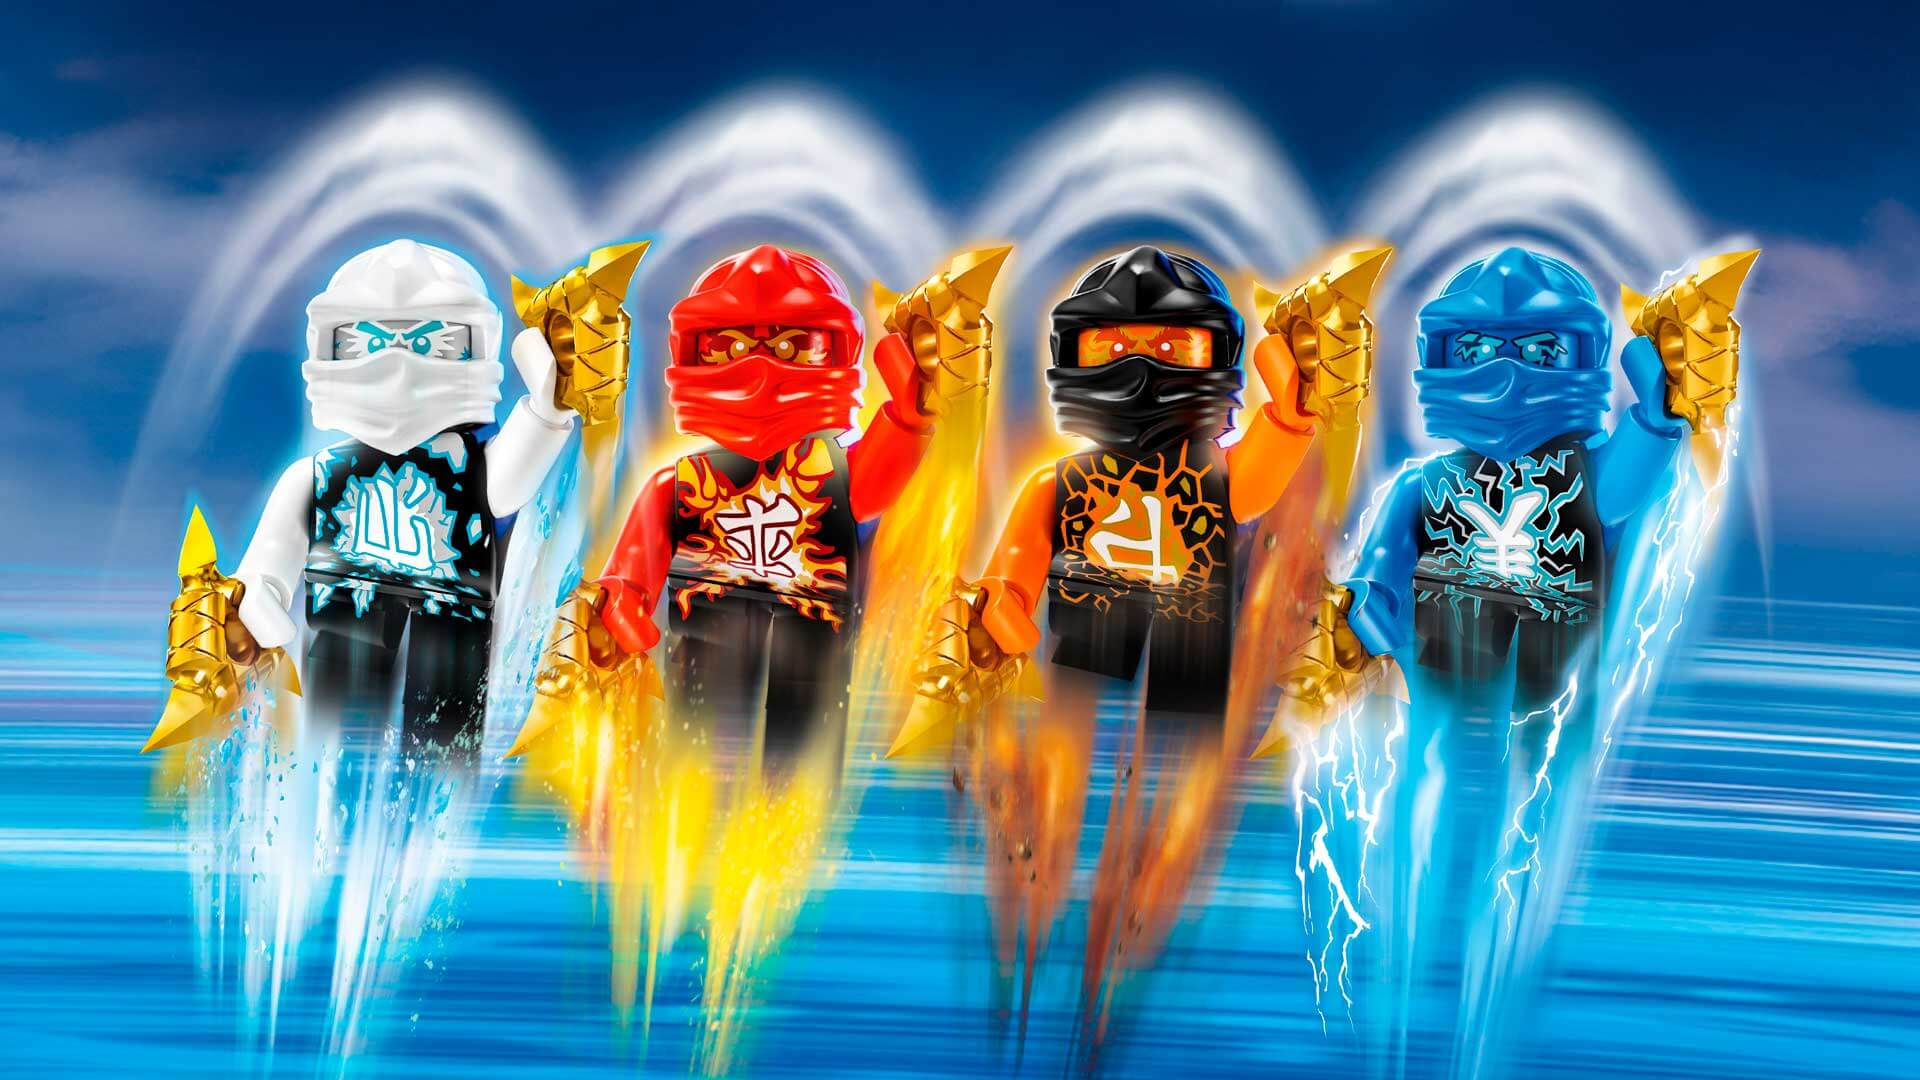 Ninjago wallpapers top free ninjago backgrounds - Ninjago phone wallpaper ...